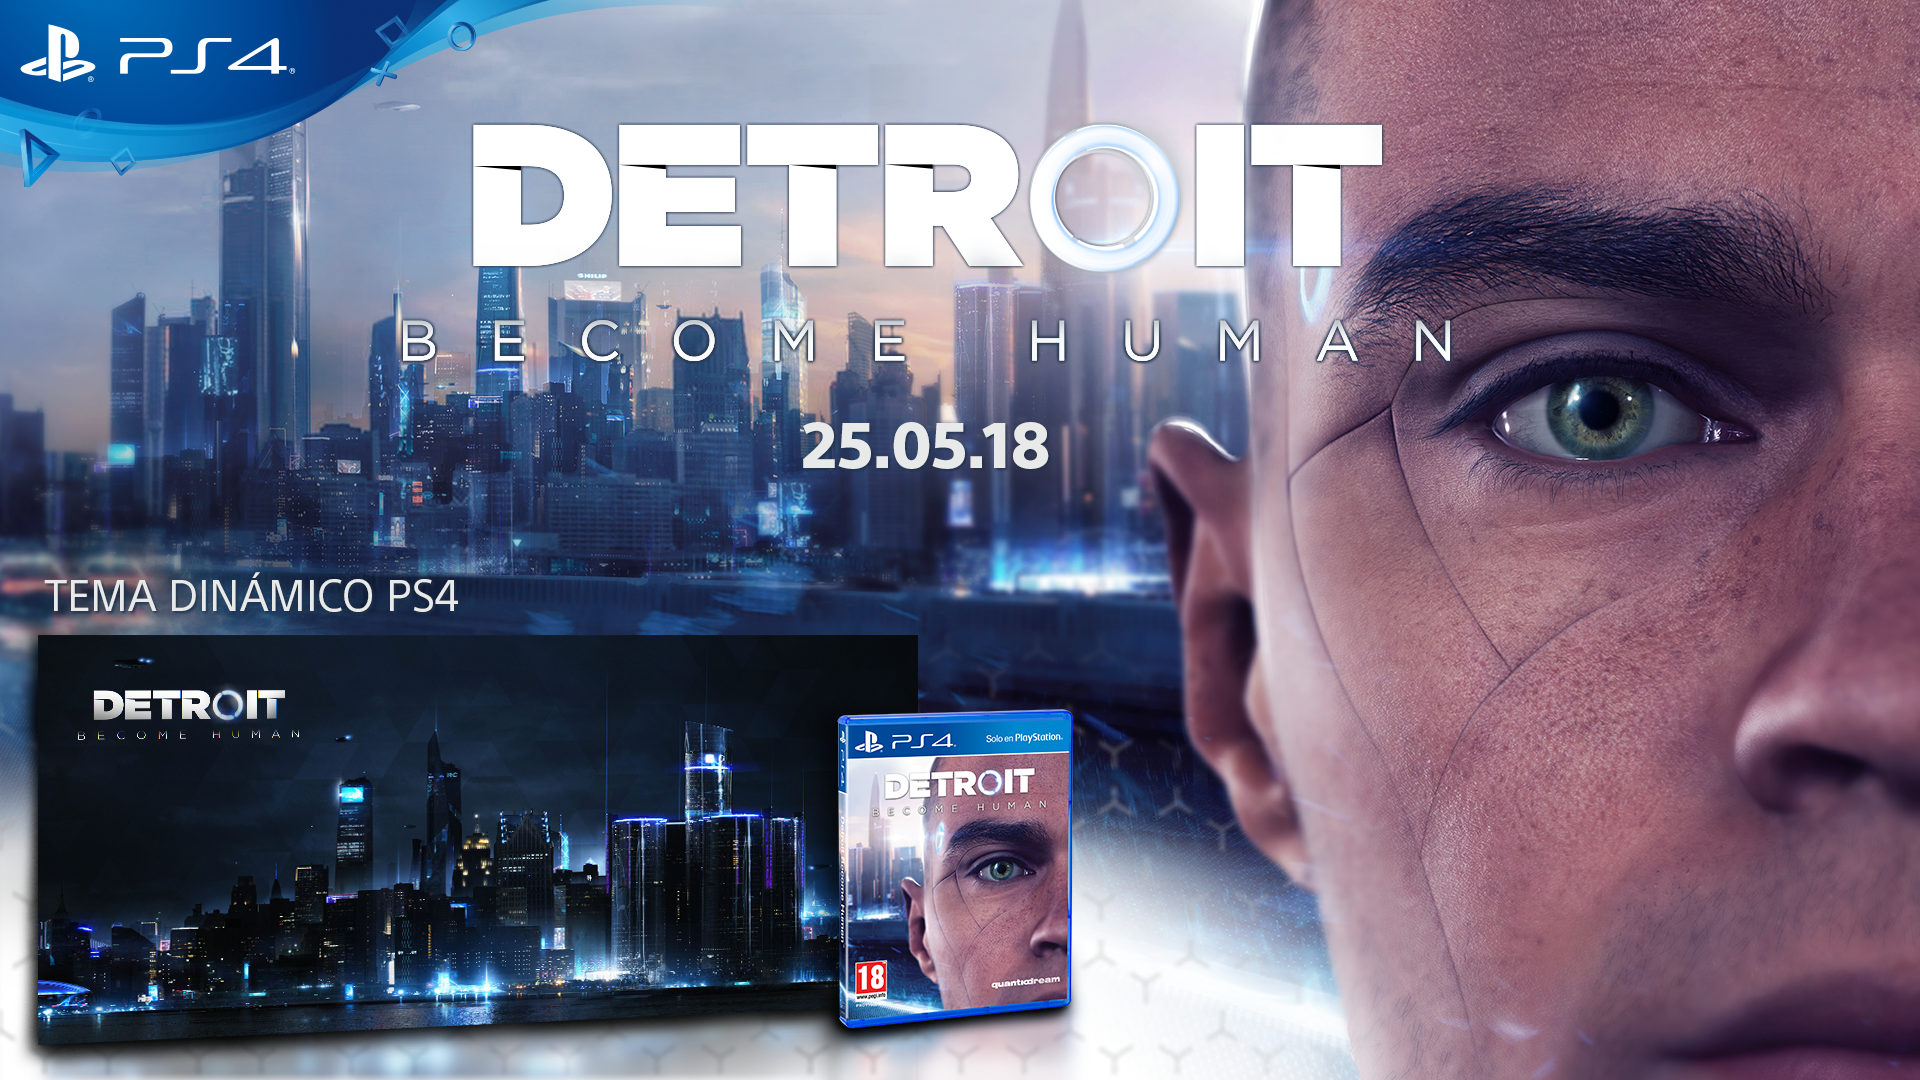 detroit-become-human banner 2